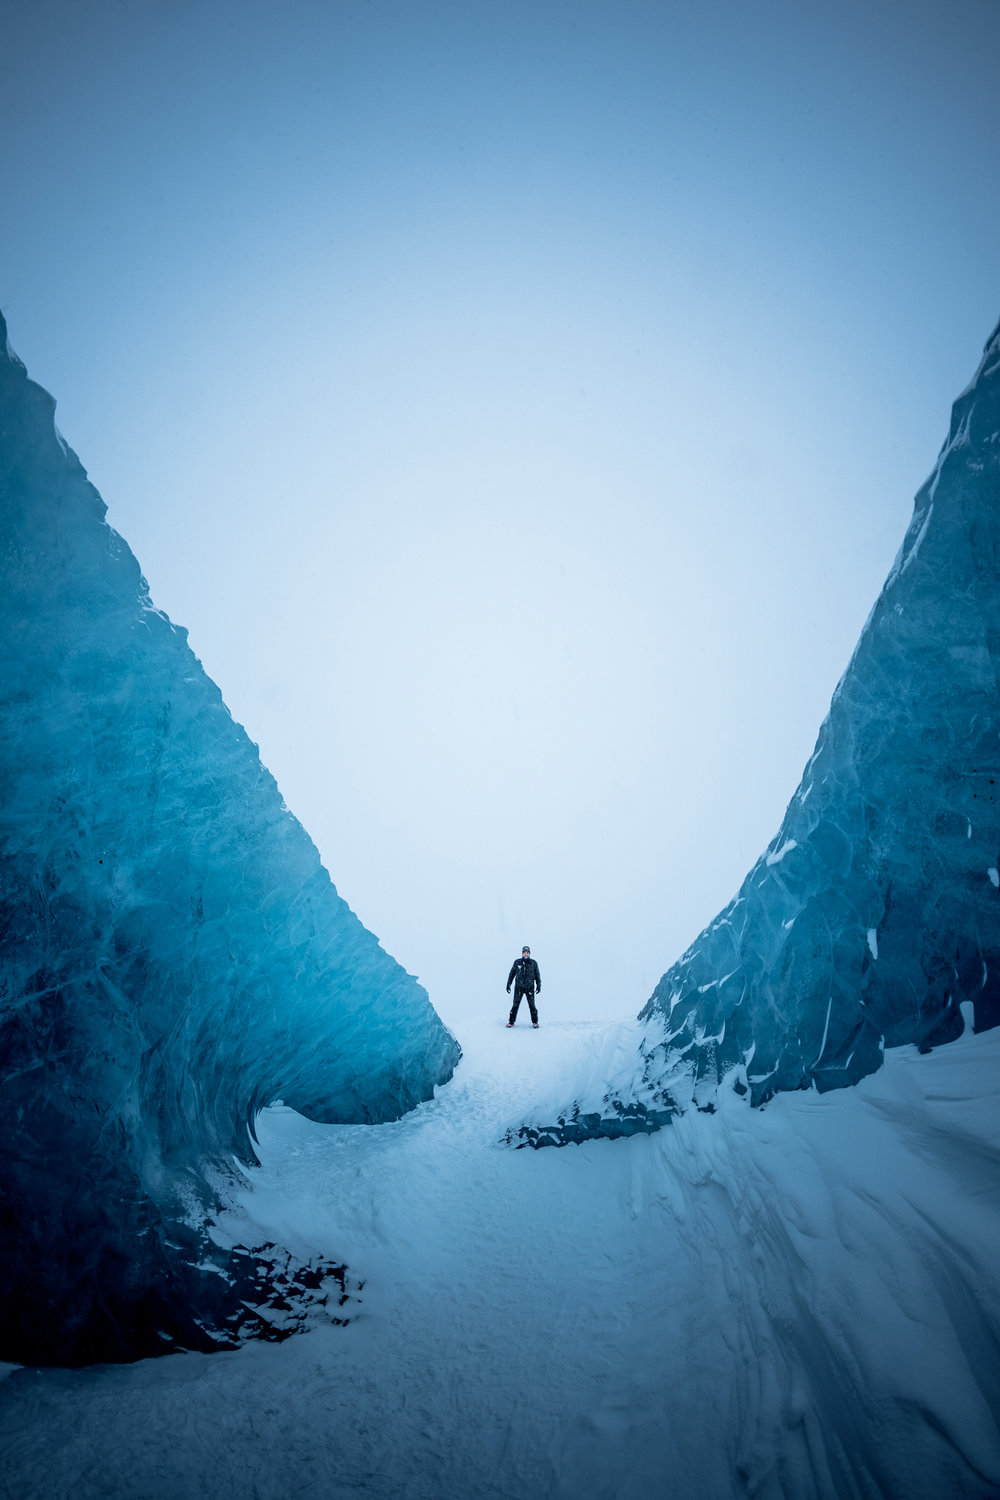 Siggi, and the frozen walls of Ice